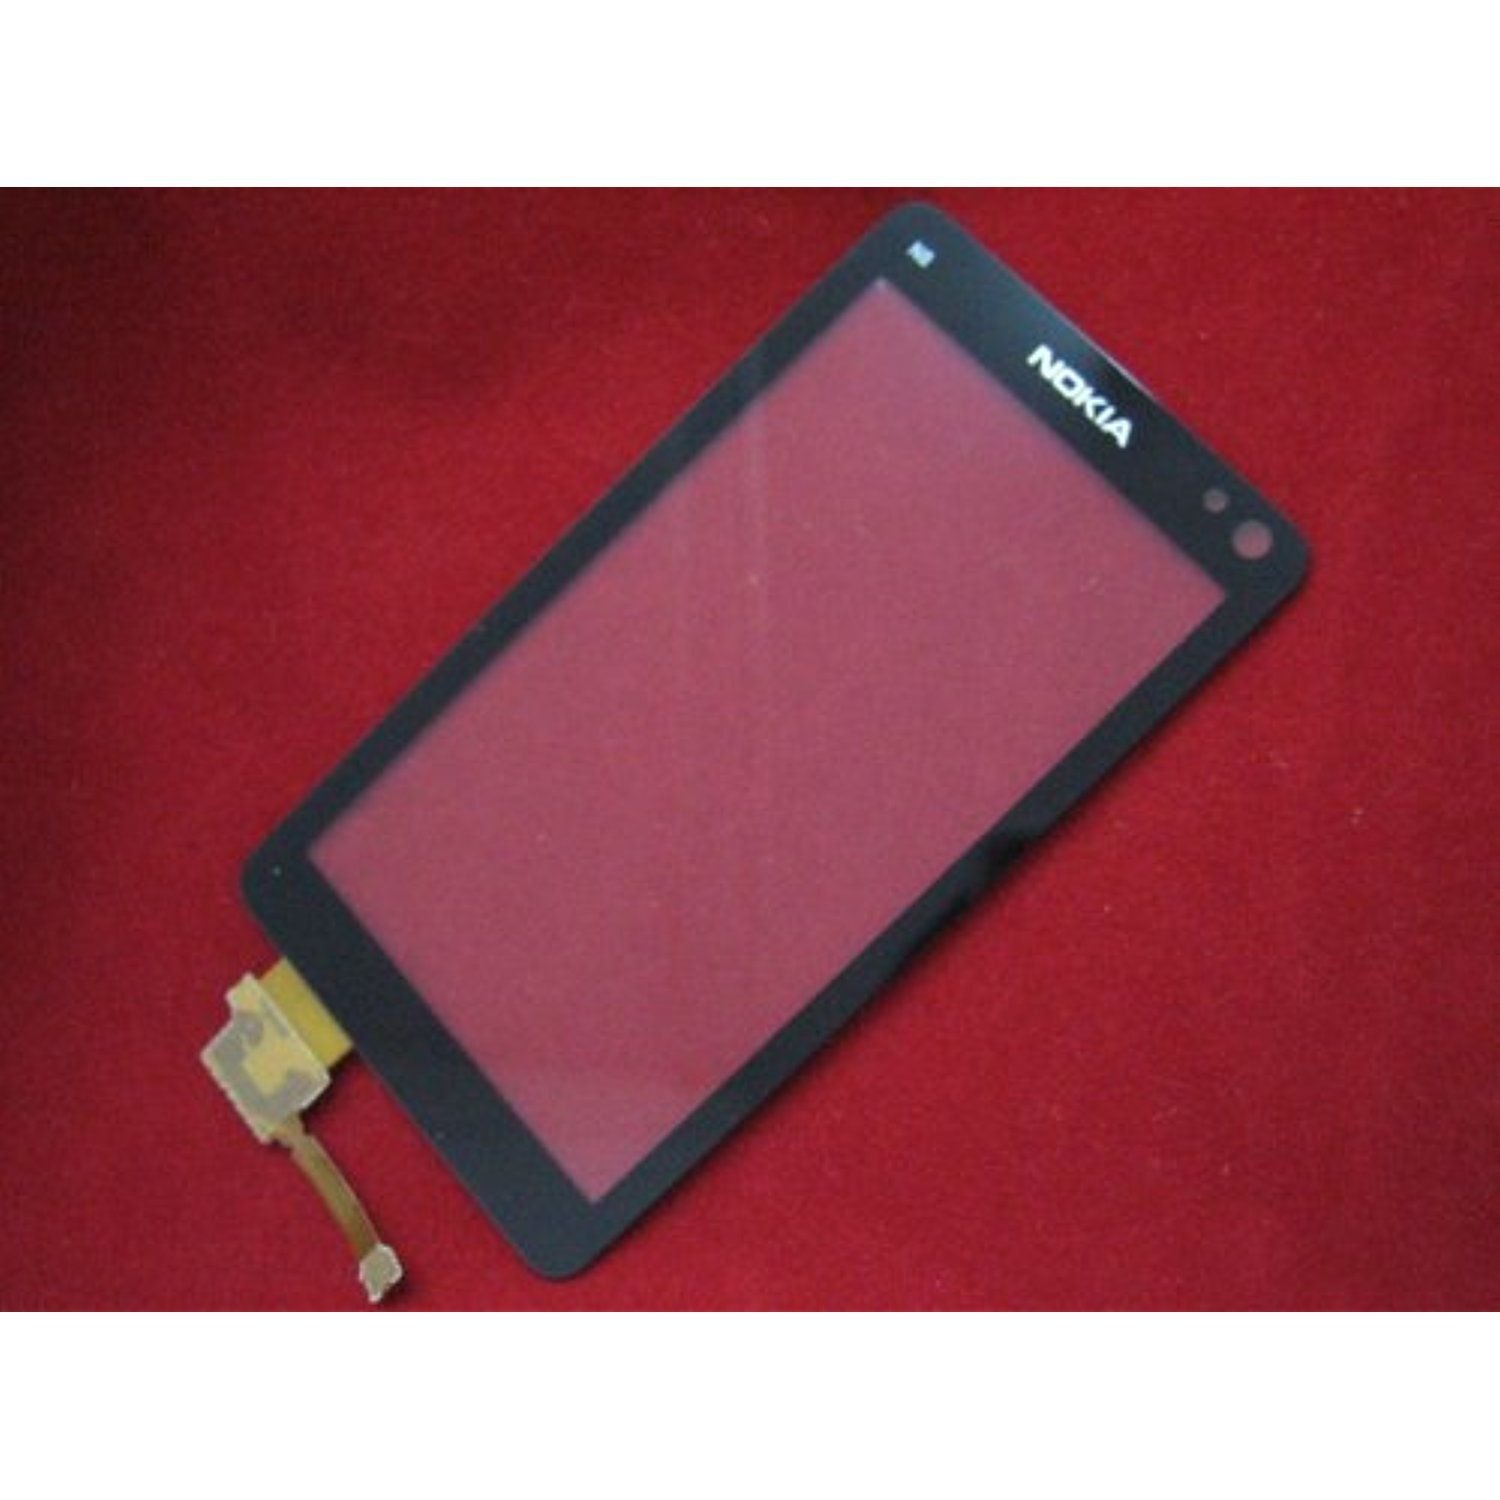 Generic Touch Screen Digitizer Front Glass Lens Part for Nokia N8 N 8 Mobile